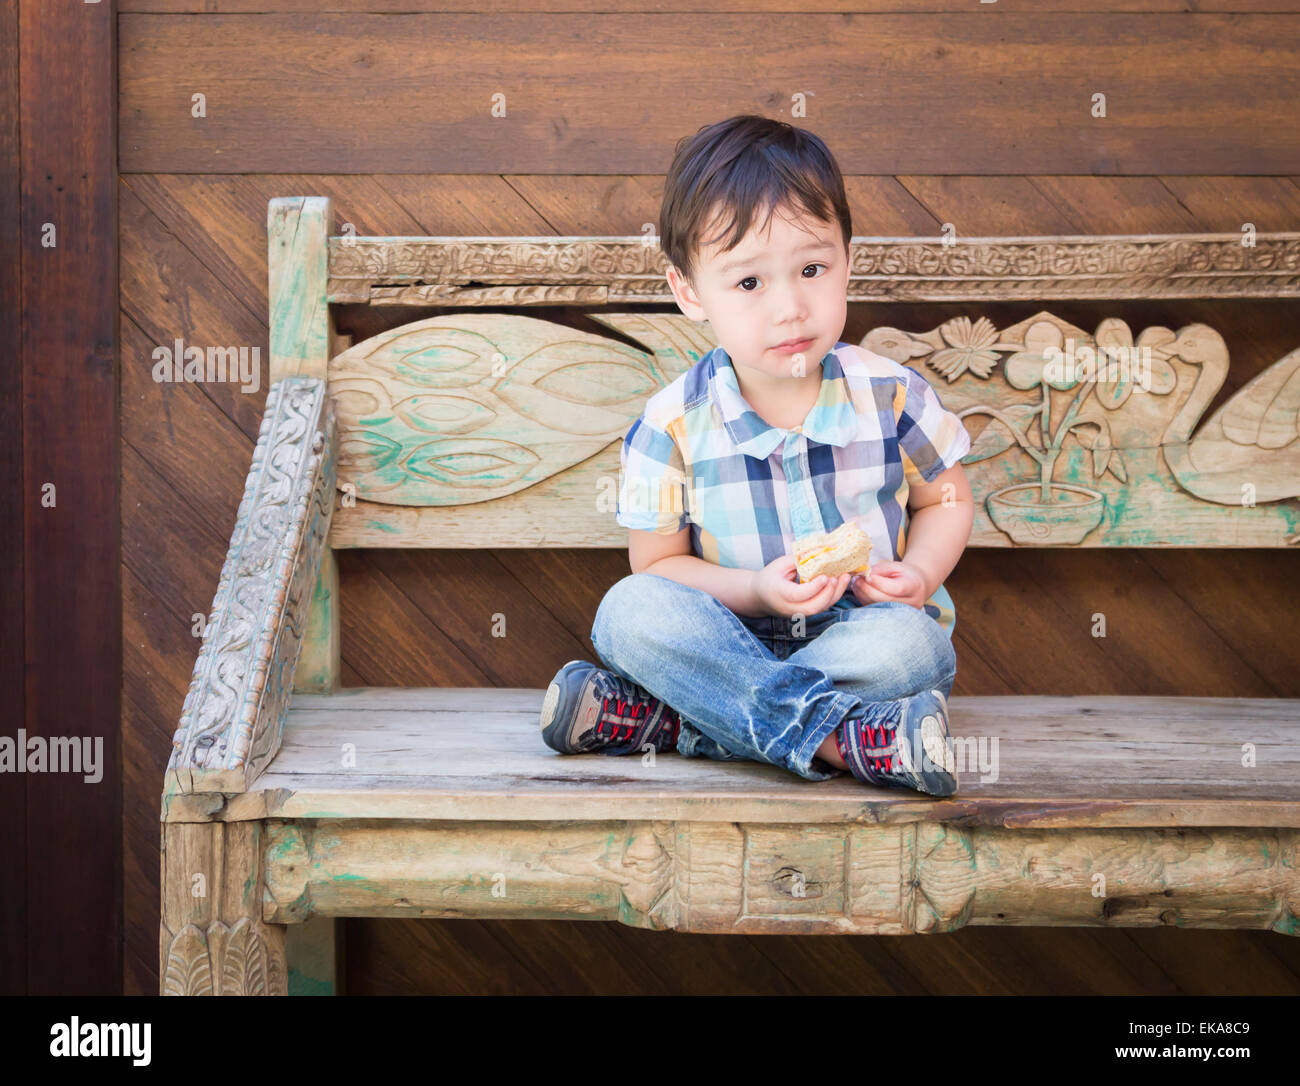 Cute Relaxed Mixed Race Boy Sitting on Bench Eating His Sandwich. - Stock Image